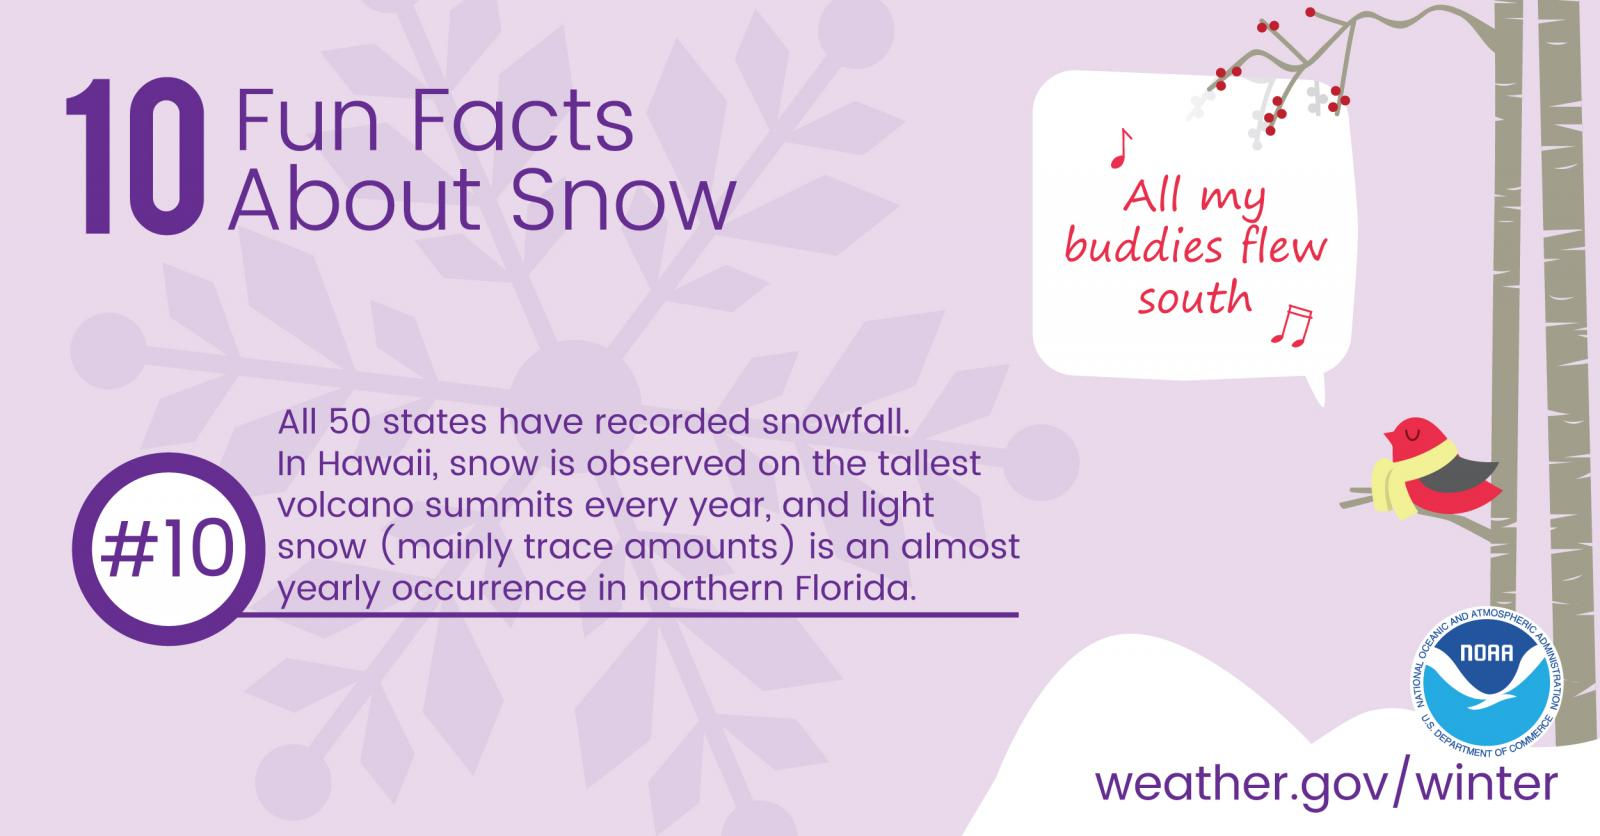 10 Fun Facts About Snow: #10. All 50 states have recorded snowfall. In Hawaii, snow is observed on the tallest volcano summits every year, and light snow (mainly trace amounts) is an almost yearly occurrence in northern Florida.